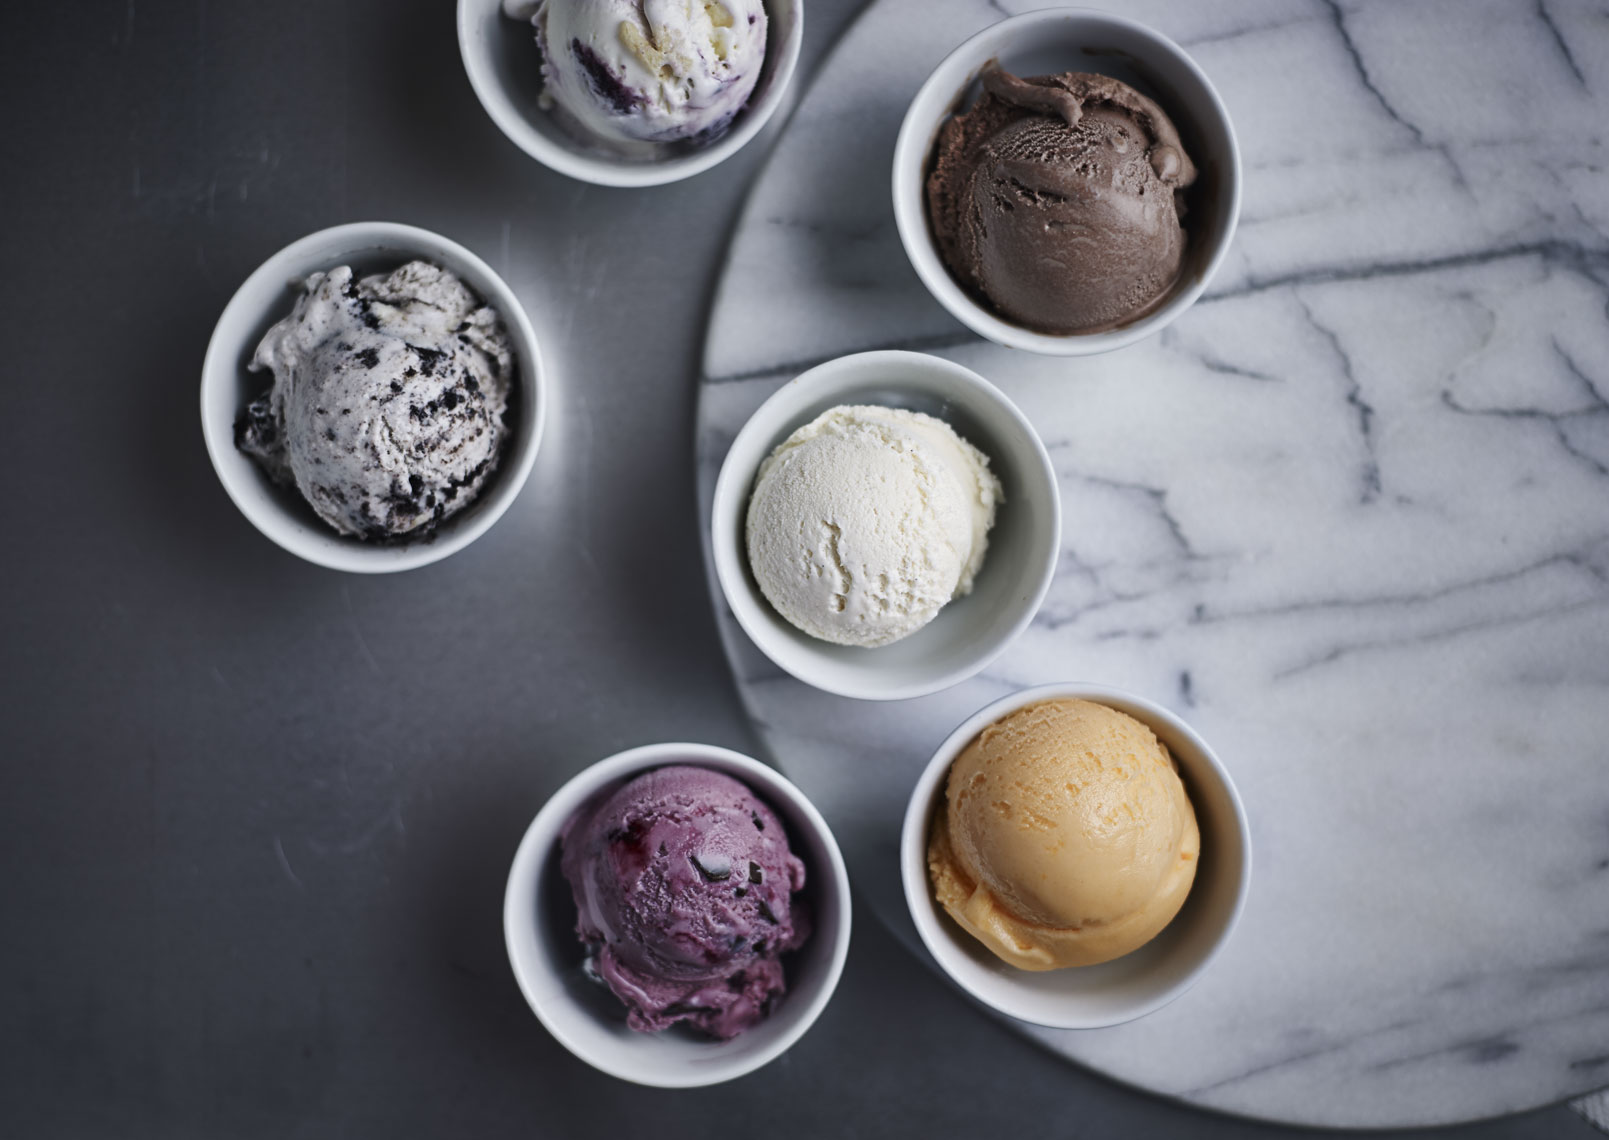 Publix_Bakery_IceCream_Inclusions_111